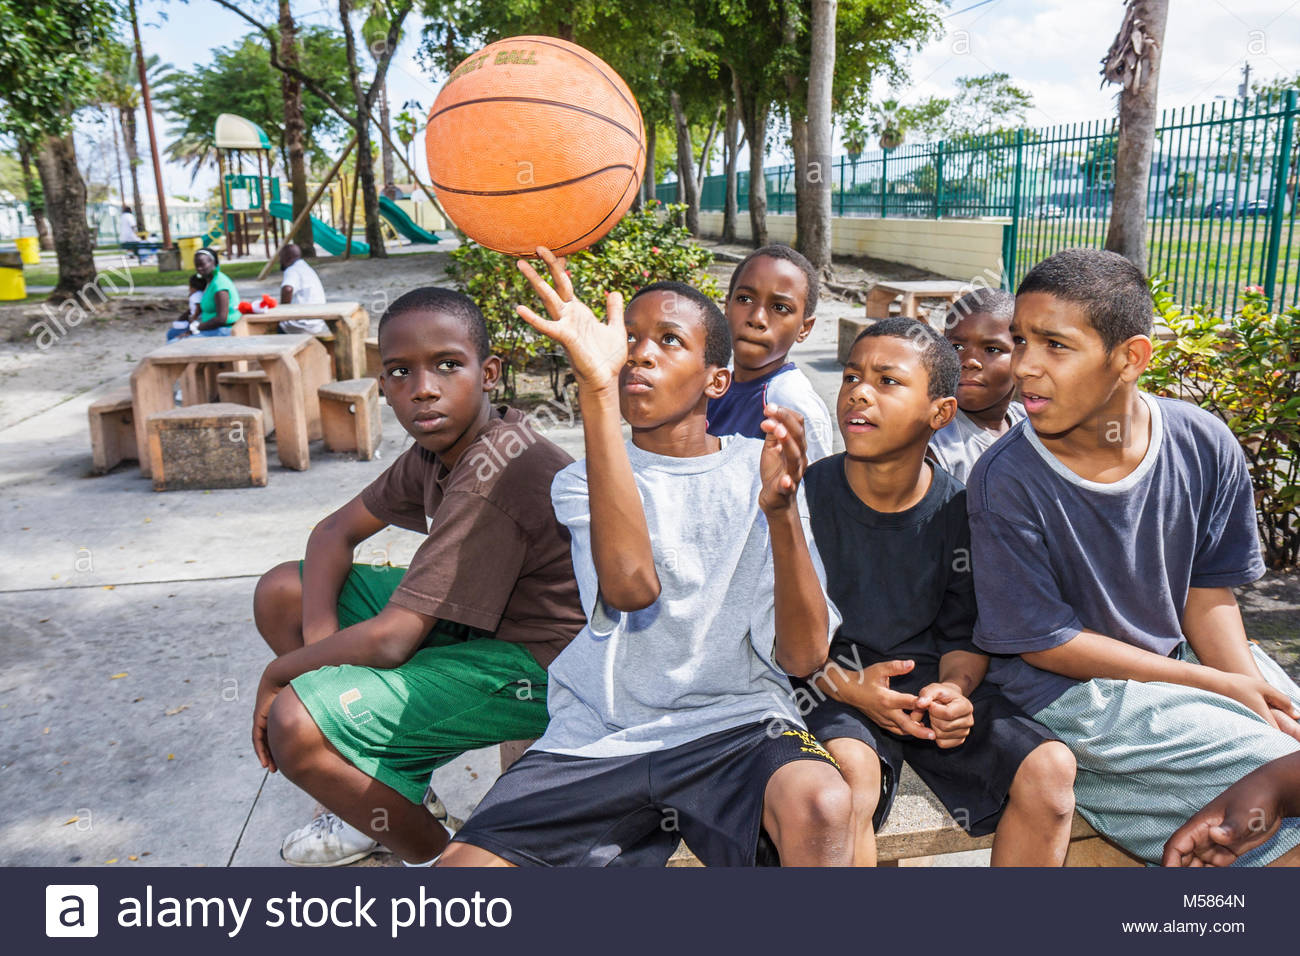 Black boys group[ park playground show off demonstrate skillful basketball play balance spin - Stock Image